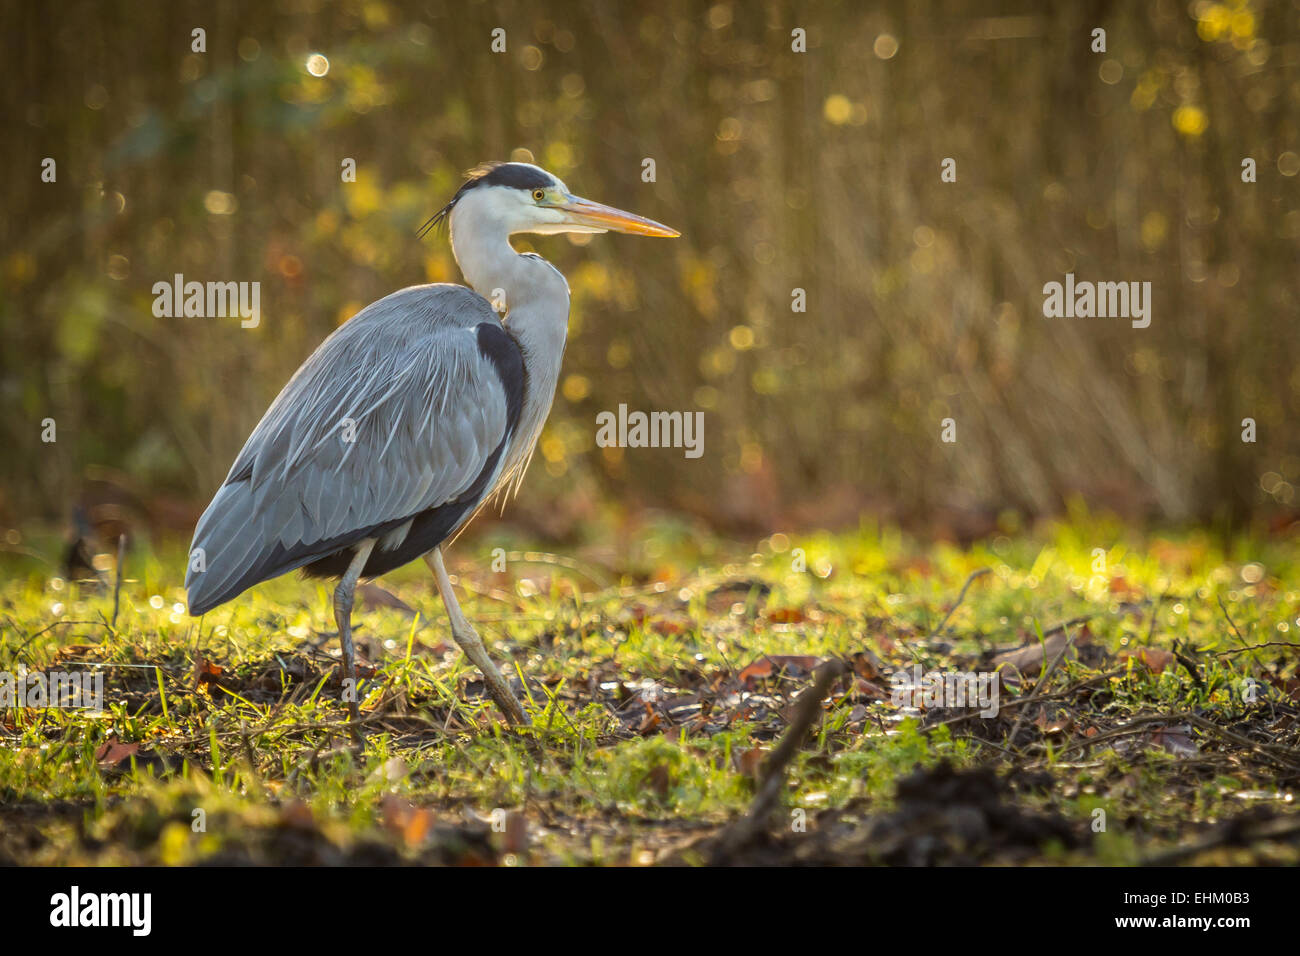 Great blue heron (Ardea herodias) in search of food in a forest during winter. - Stock Image